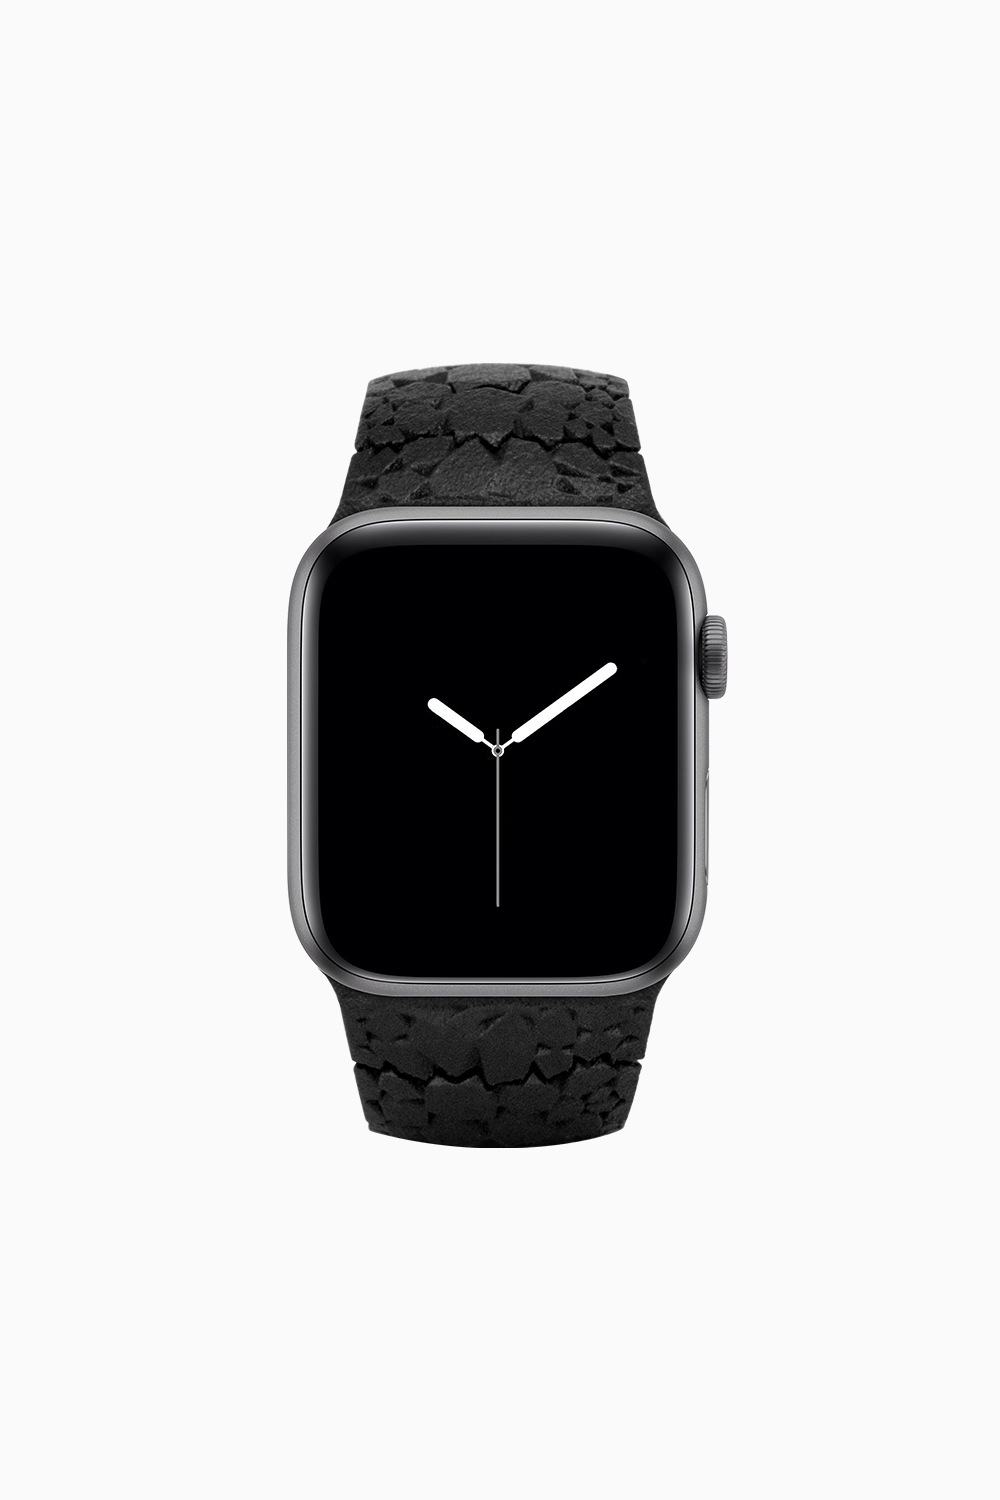 Obsidian Apple Watch Band, Design by Matthijs Kok for Freshfiber